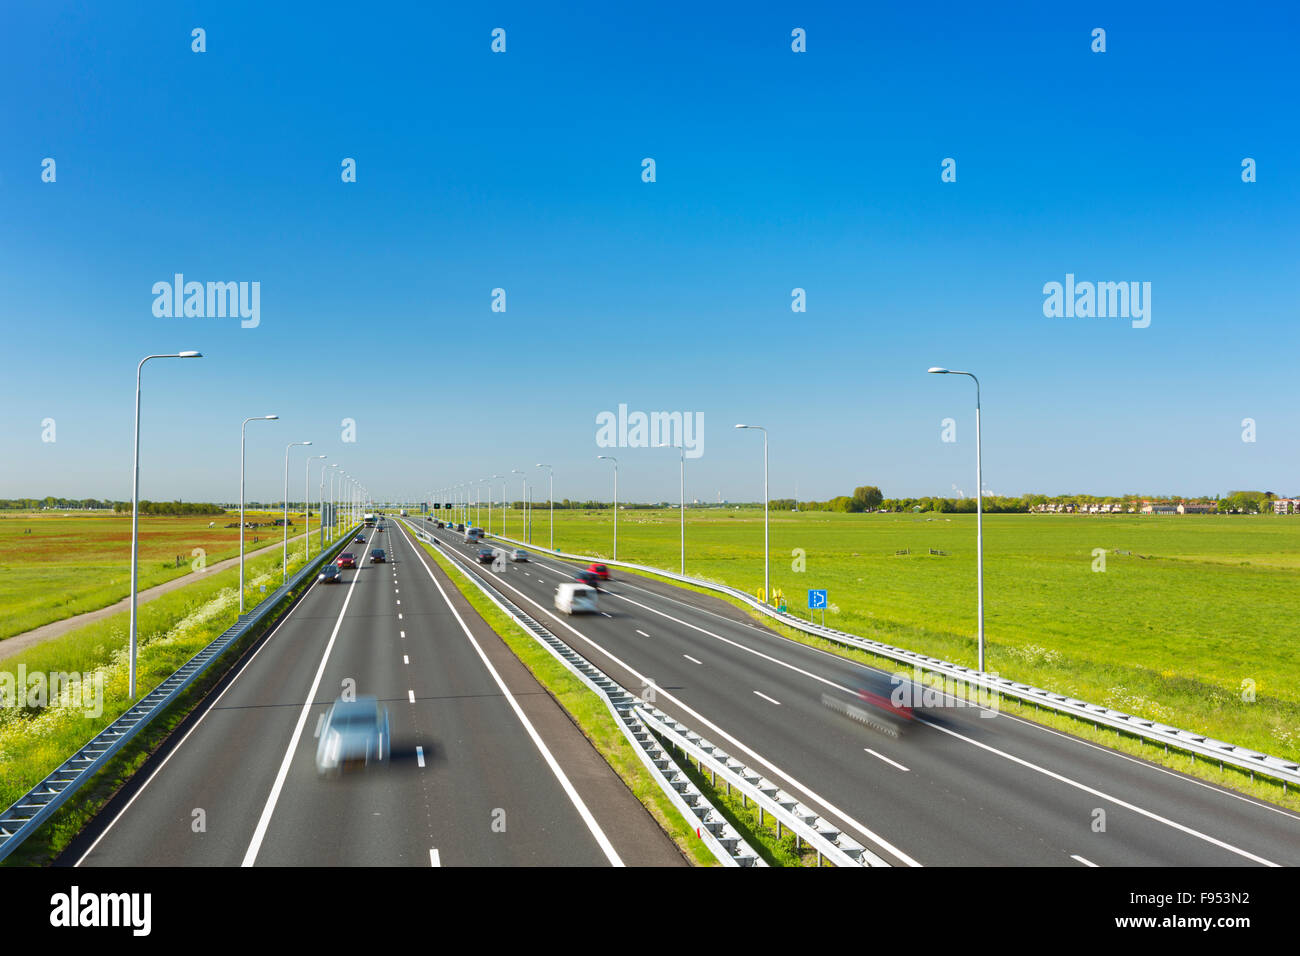 A highway with traffic through grassy fields on a bright and sunny day in The Netherlands. - Stock Image